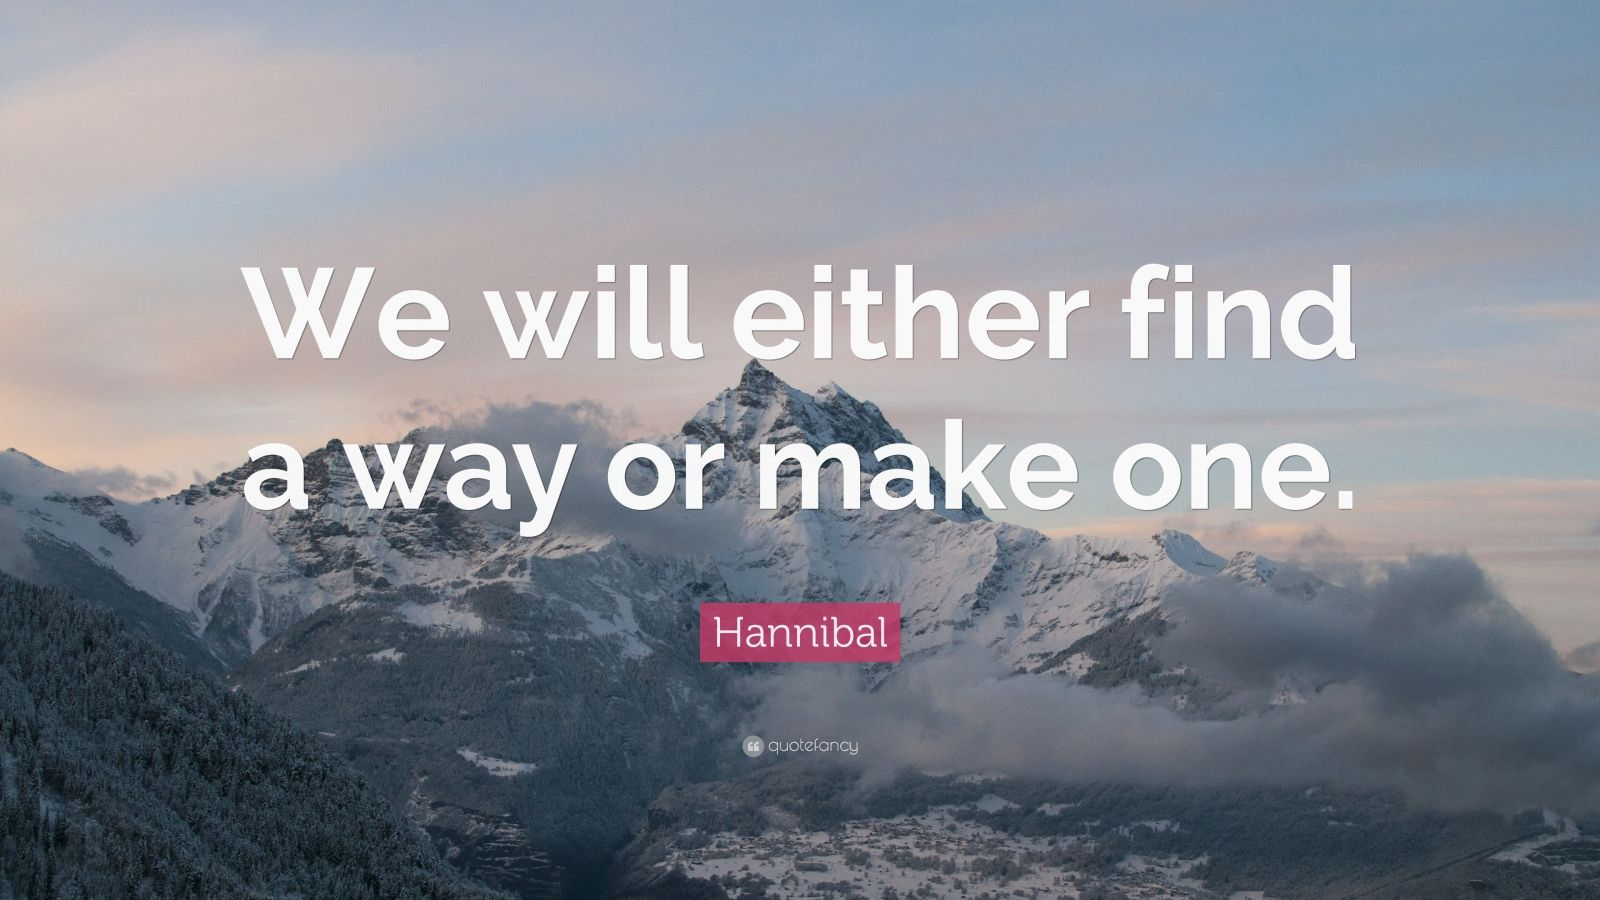 Arnold Schwarzenegger Quotes Wallpaper Hannibal Quote We Will Either Find A Way Or Make One